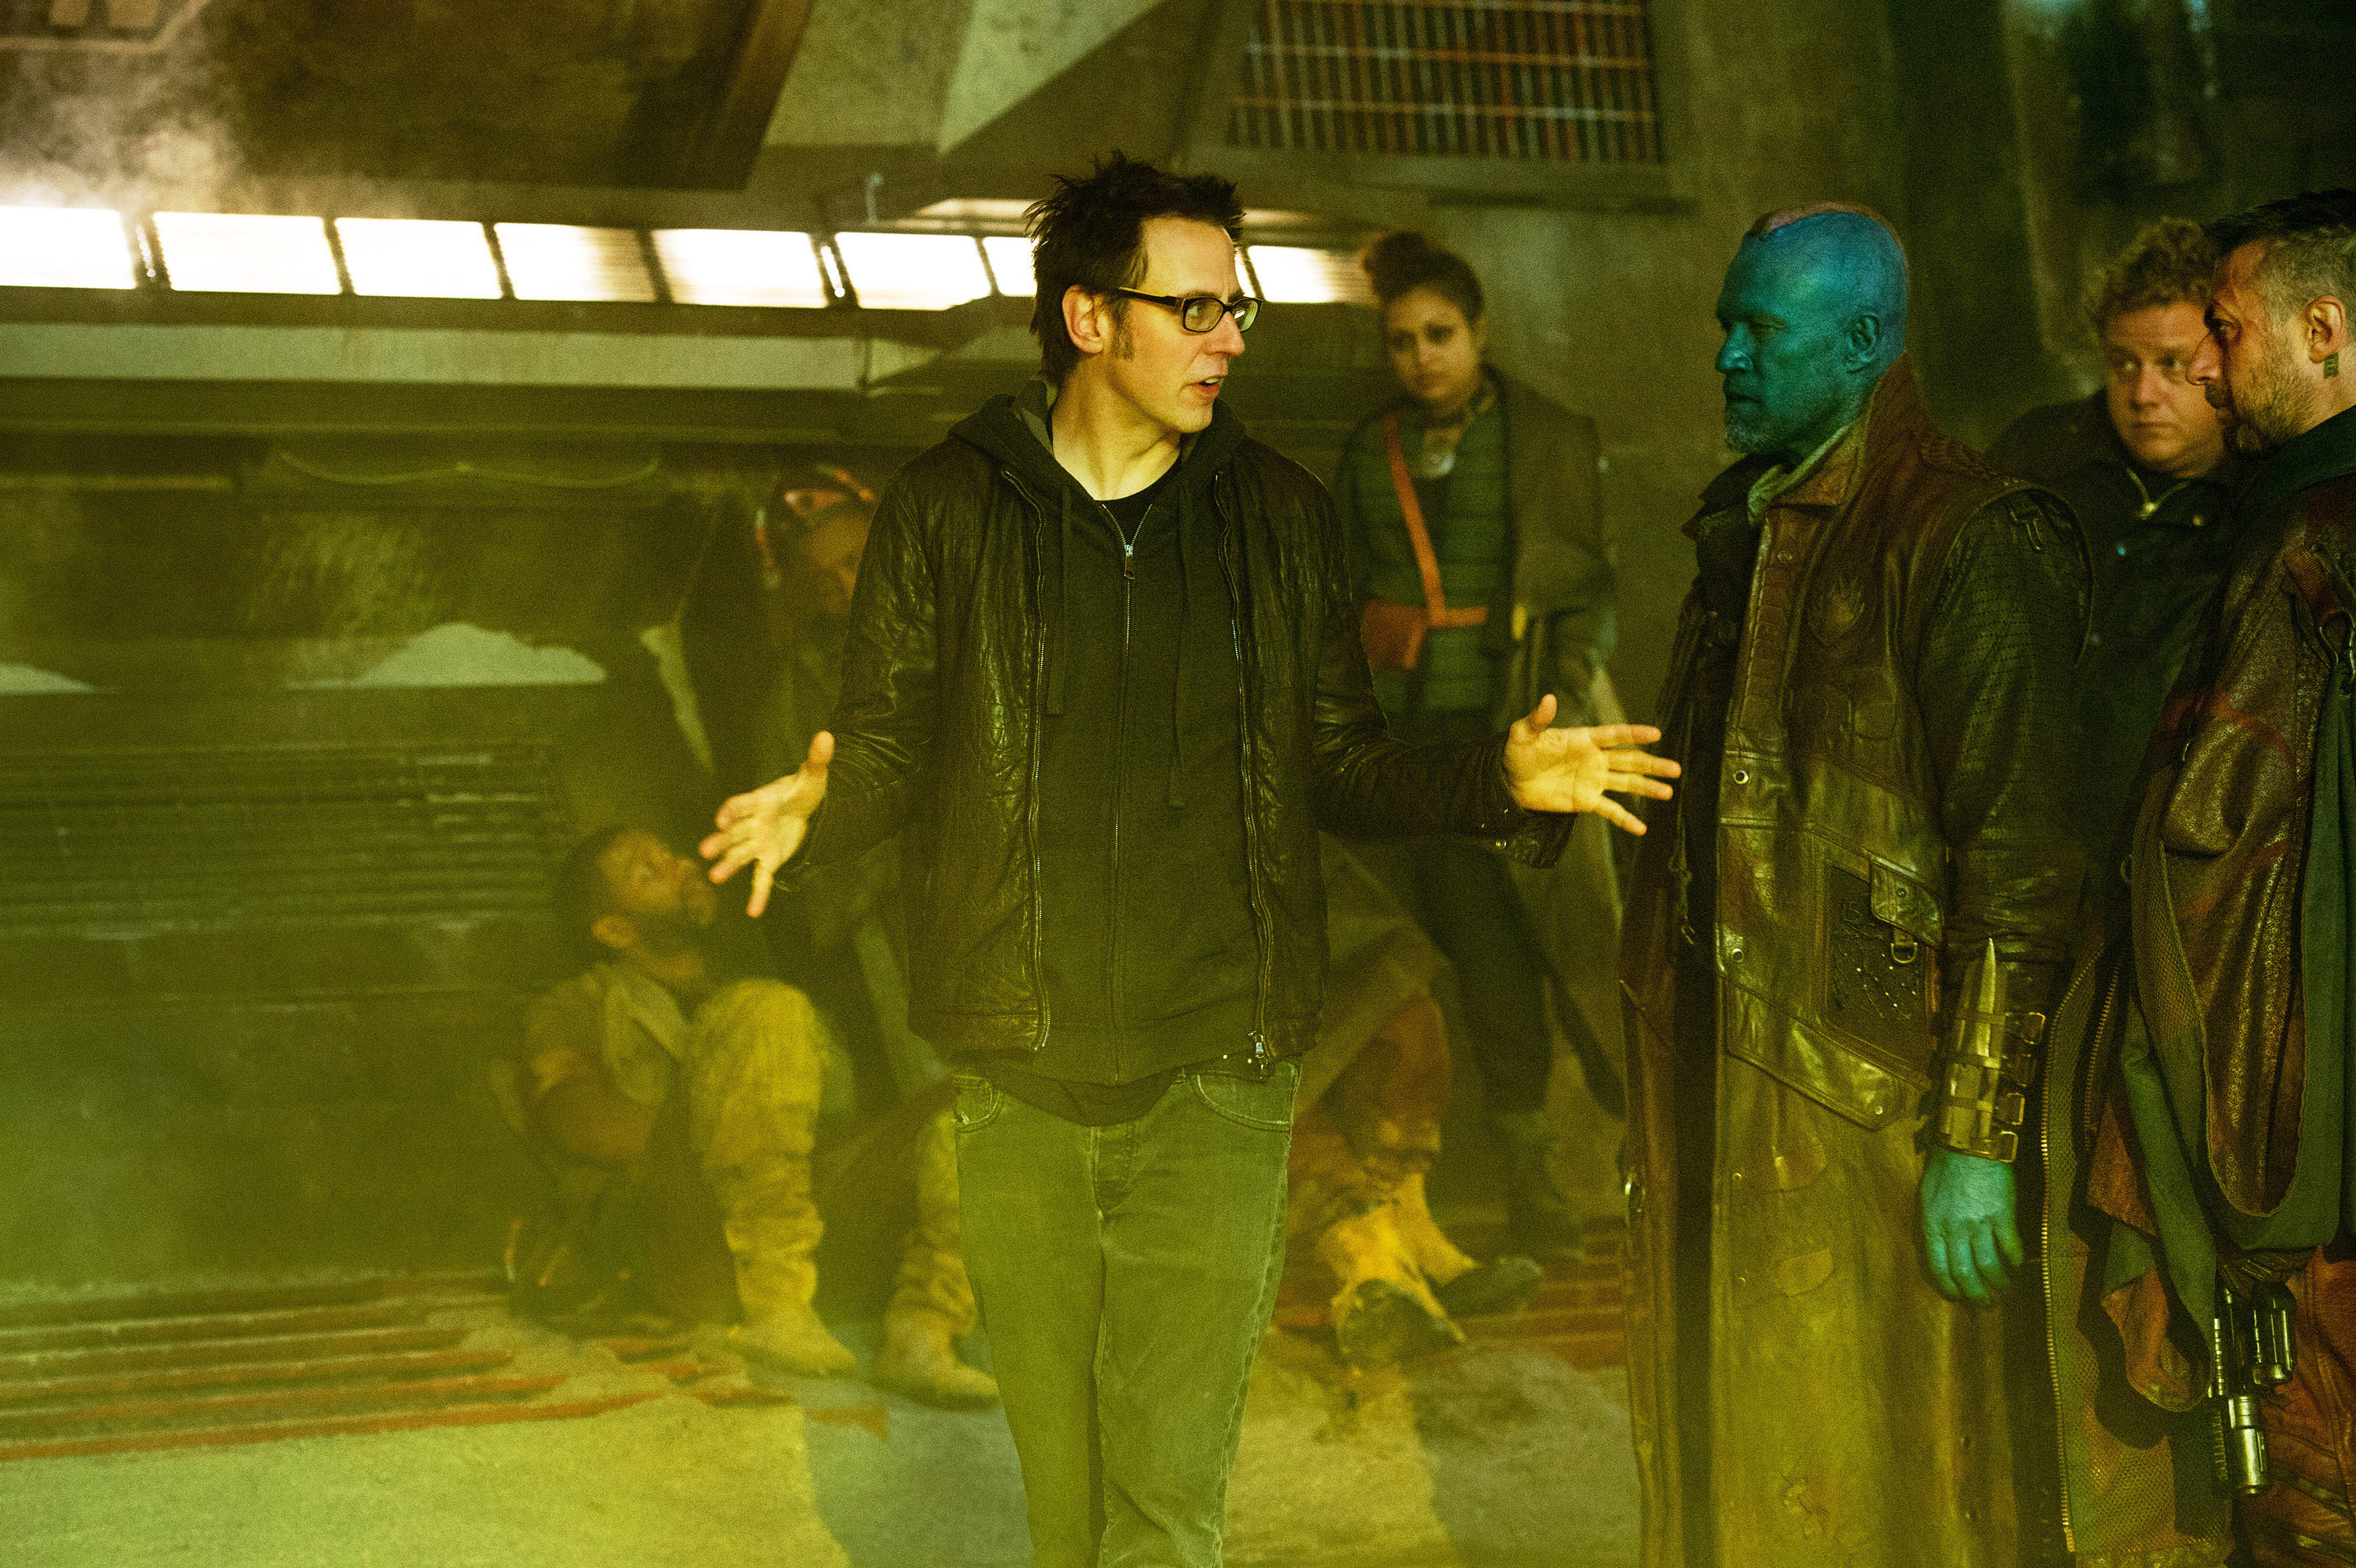 GUARDIANS OF THE GALAXY, from left: director James Gunn, Michael Rooker, Sean Gunn, on set, 2014. ph: Jay Maidment/©Walt Disney Studios Motion Pictures/Courtesy Everett Collection